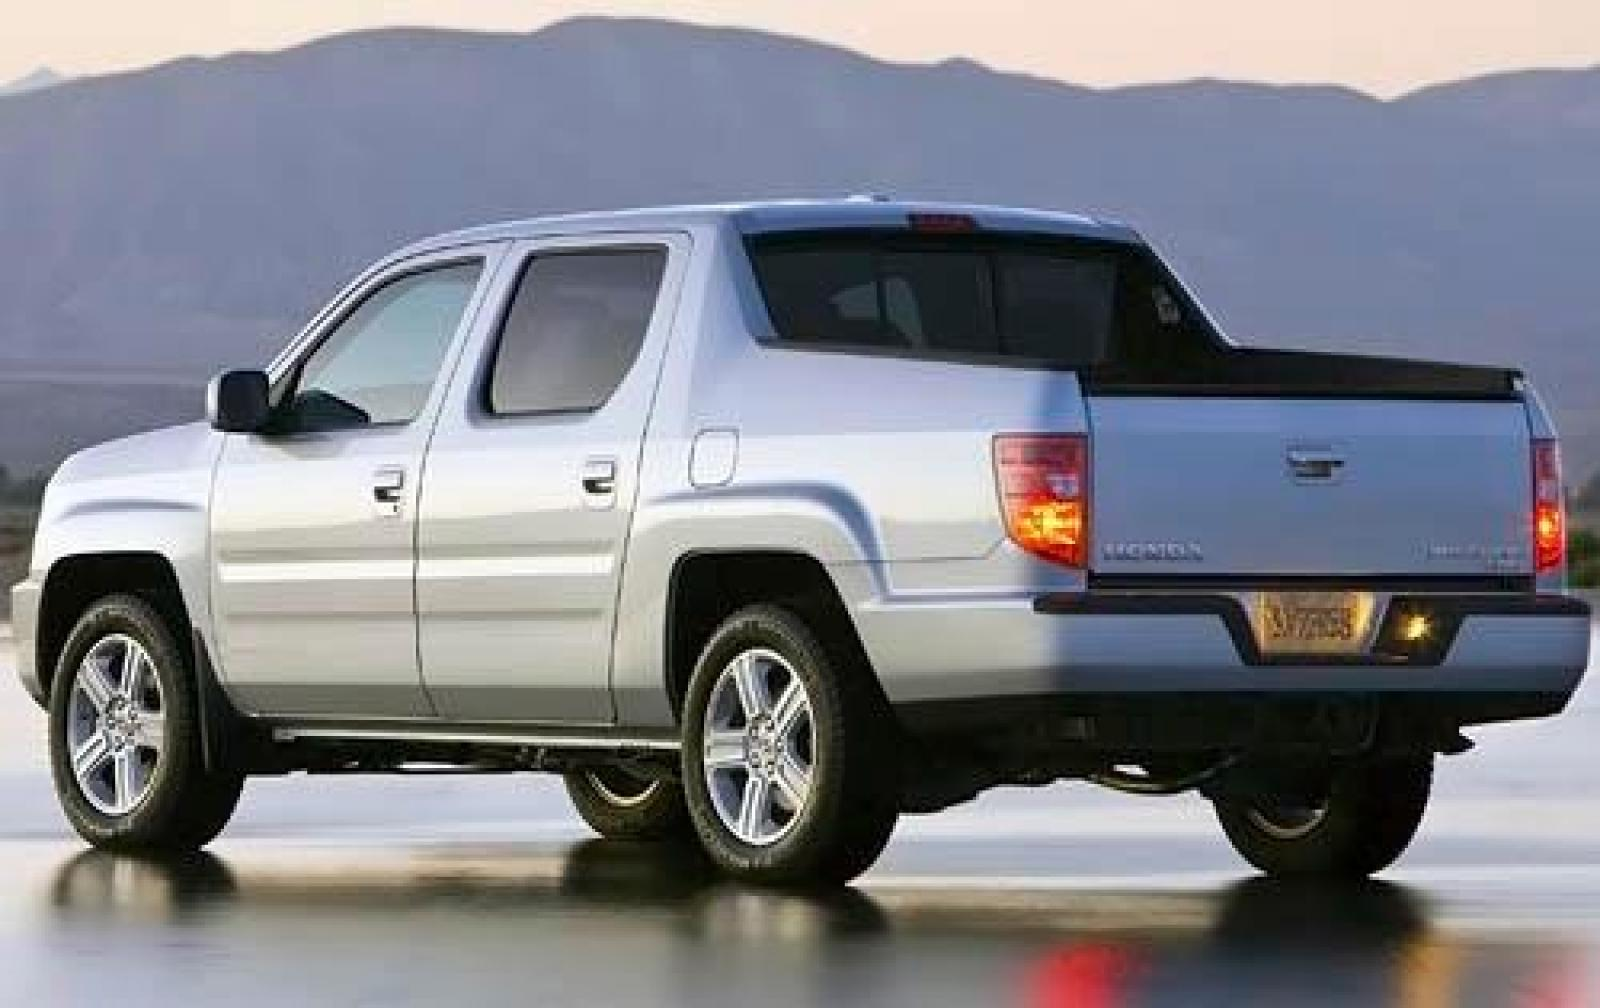 2011 honda ridgeline information and photos zombiedrive. Black Bedroom Furniture Sets. Home Design Ideas